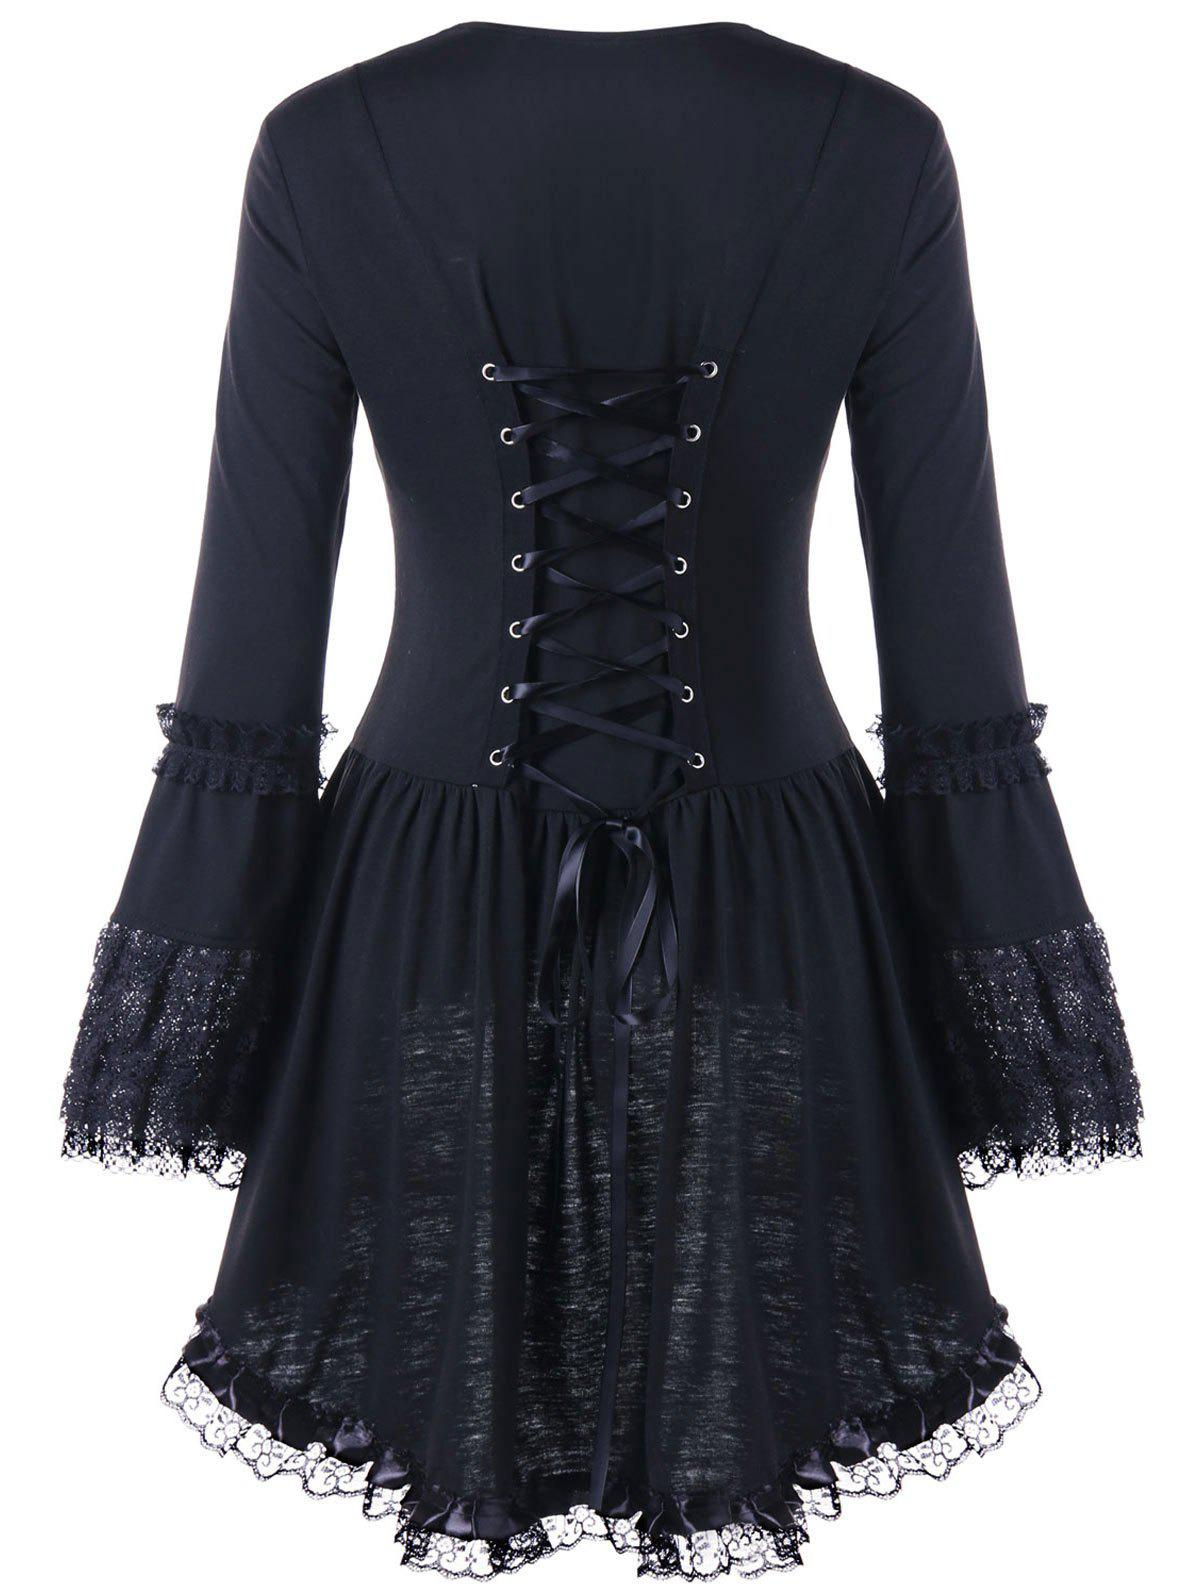 Halloween Lace Up Sweetheart Neck TopWOMEN<br><br>Size: M; Color: BLACK; Material: Polyester,Spandex; Shirt Length: Long; Sleeve Length: Full; Collar: Sweetheart Neck; Style: Gothic; Embellishment: Lace; Pattern Type: Solid; Season: Fall,Spring; Weight: 0.3400kg; Package Contents: 1 x Top;